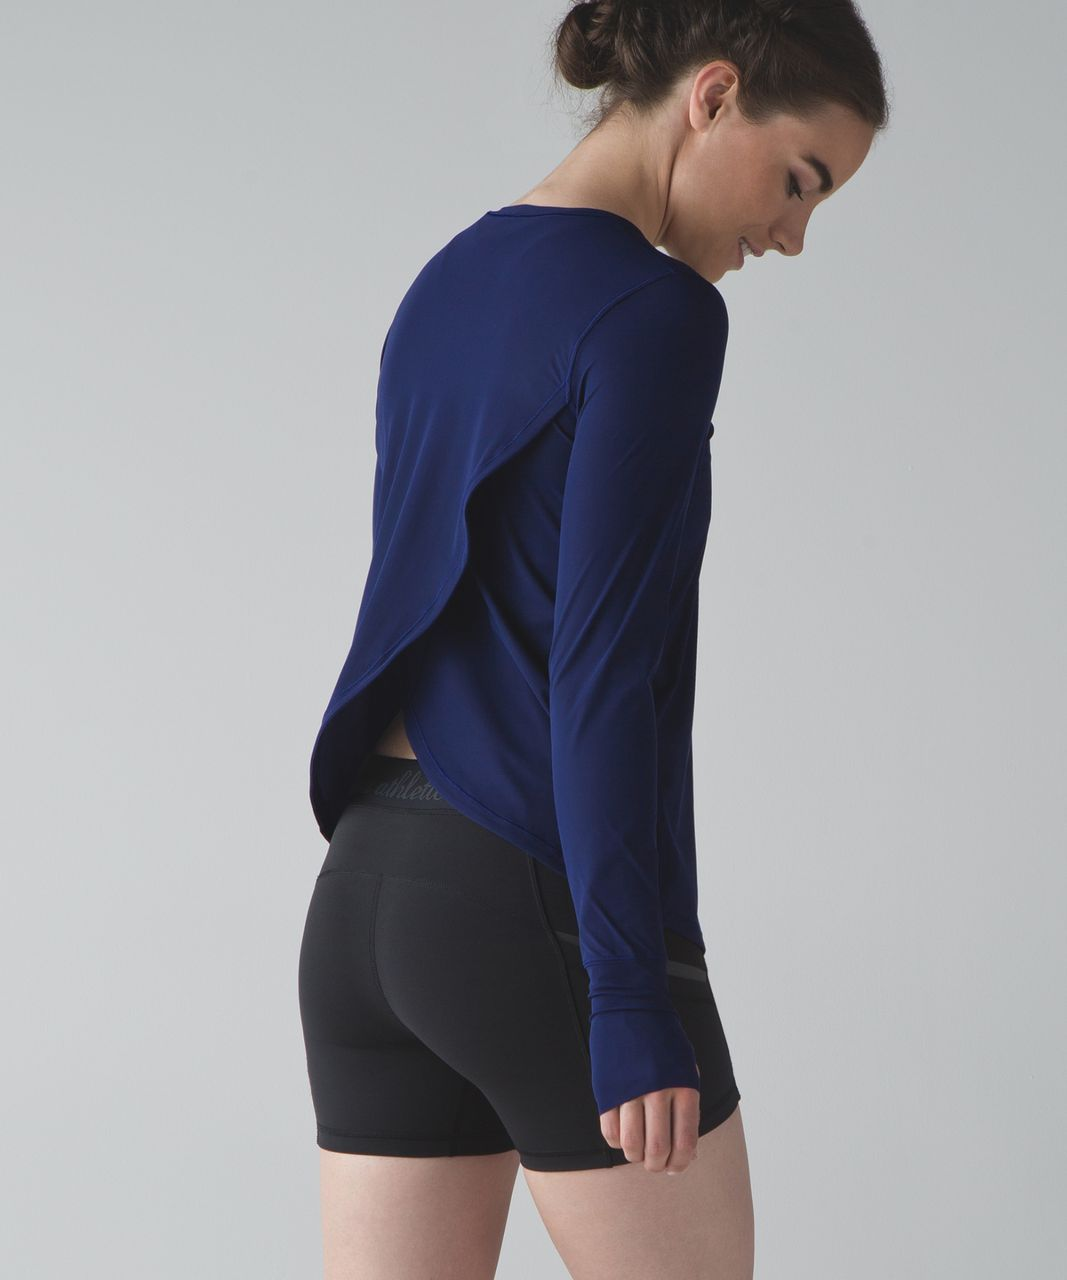 75950b622ebe Original Price: $88. Color: hero blue. This long sleeve has UPF 45 coverage  and sweat-wicking fabric so you can play all day in the sun.